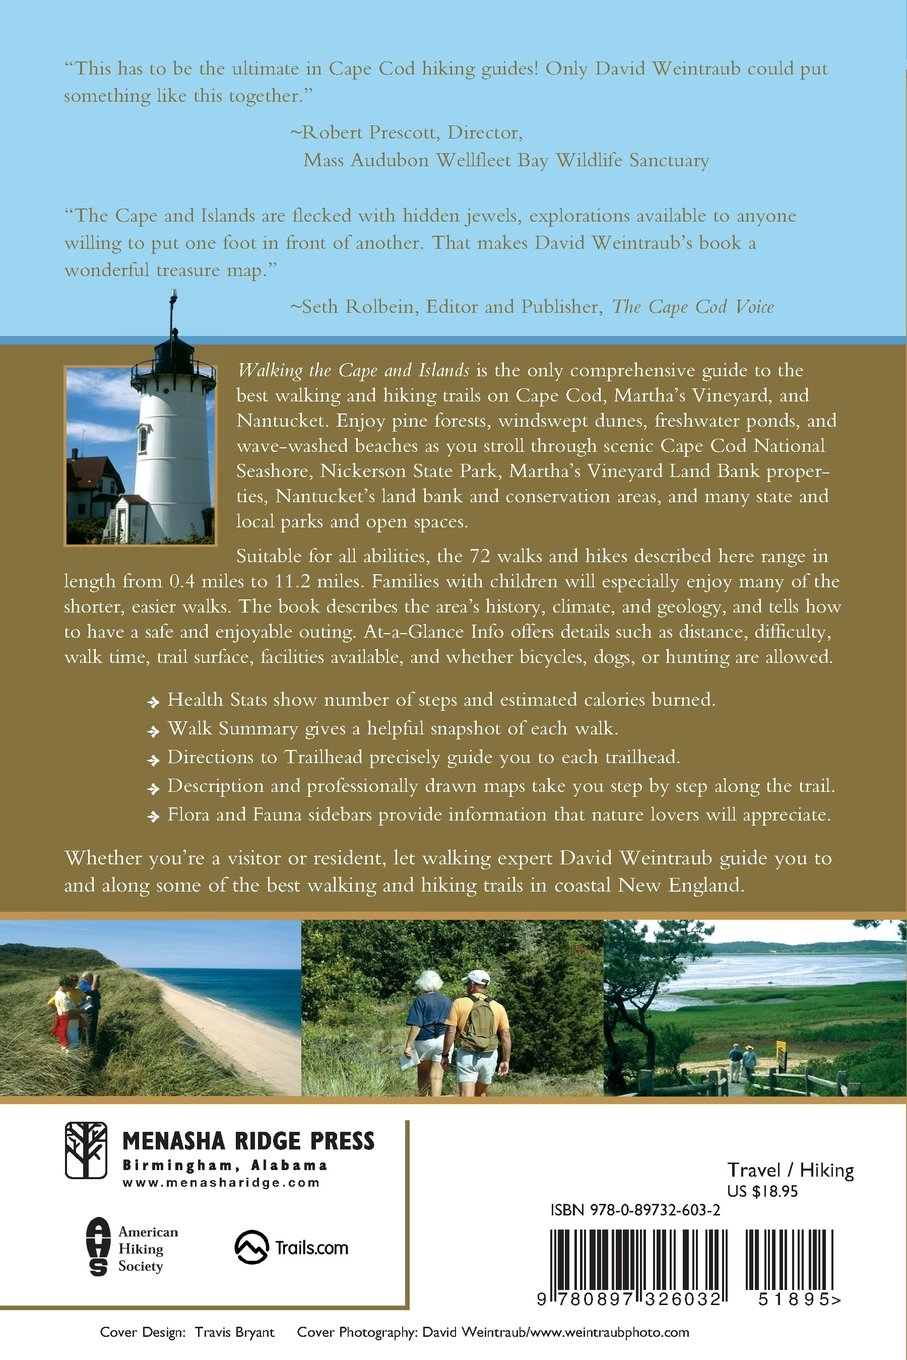 walking the cape and islands a comprehensive guide to the walking walking the cape and islands a comprehensive guide to the walking and hiking trails of cape cod martha s vineyard and nantucket david weintraub